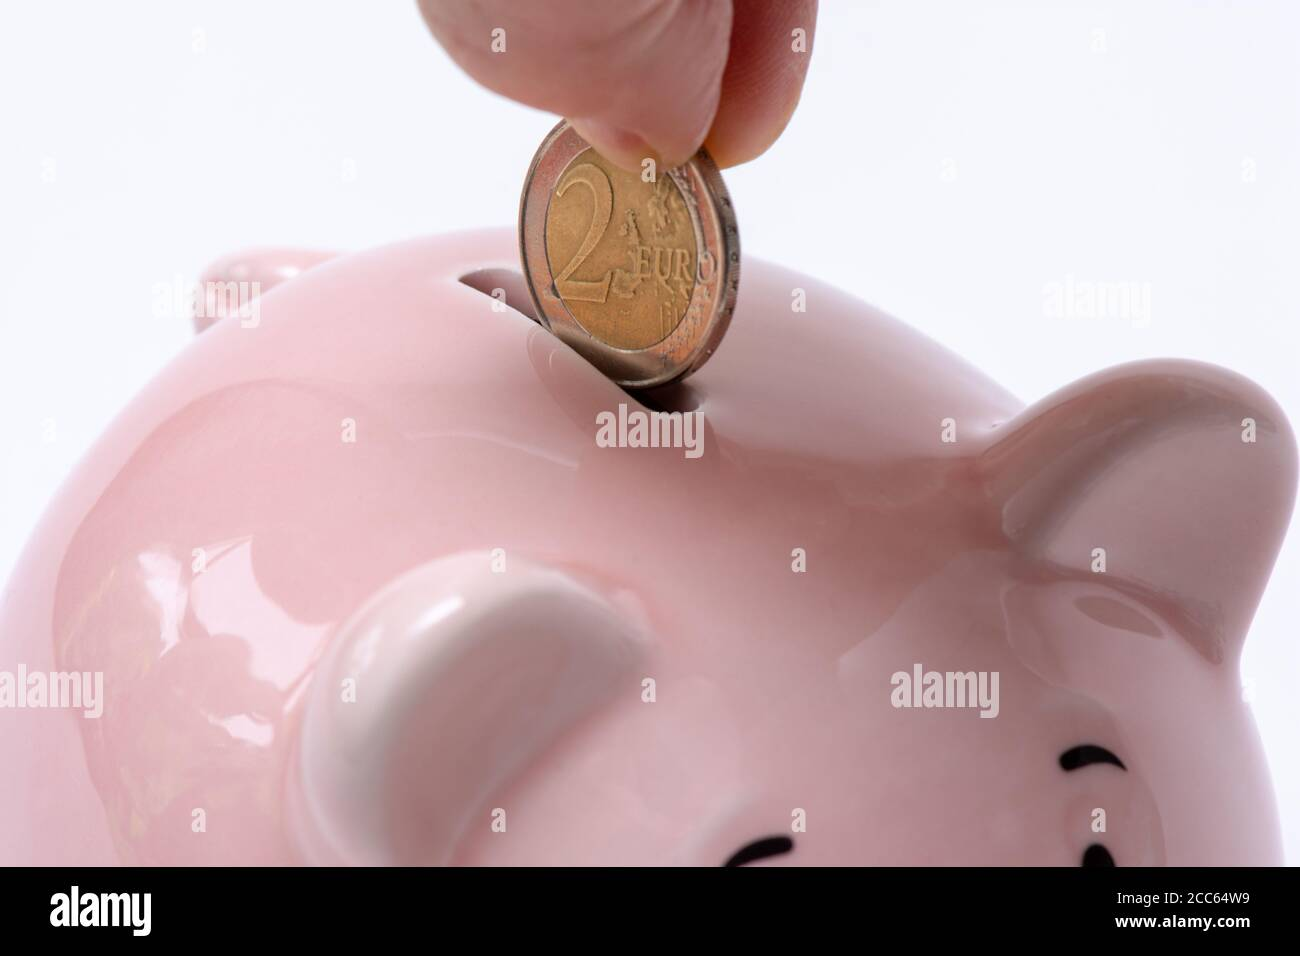 Hand putting a 2 euro coin into a piggy bank. Saving money and home finances concept. White background Stock Photo